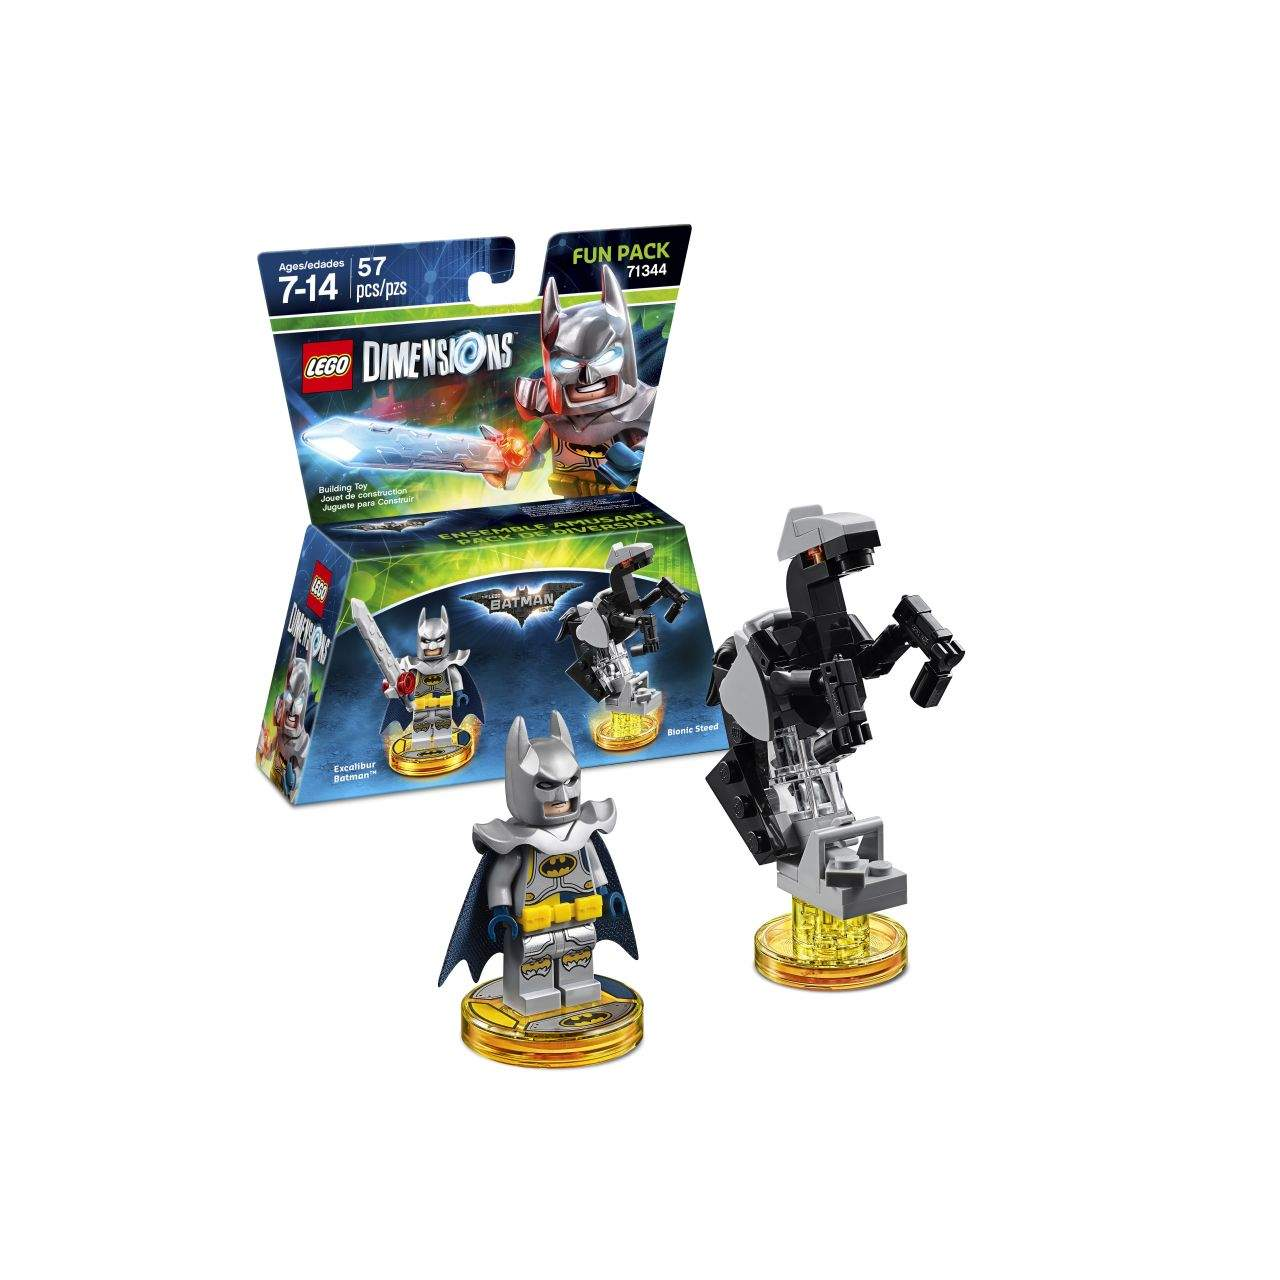 vamers-fyi-video-gaming-lego-dimensions-gets-knight-rider-and-excallibur-batman-04